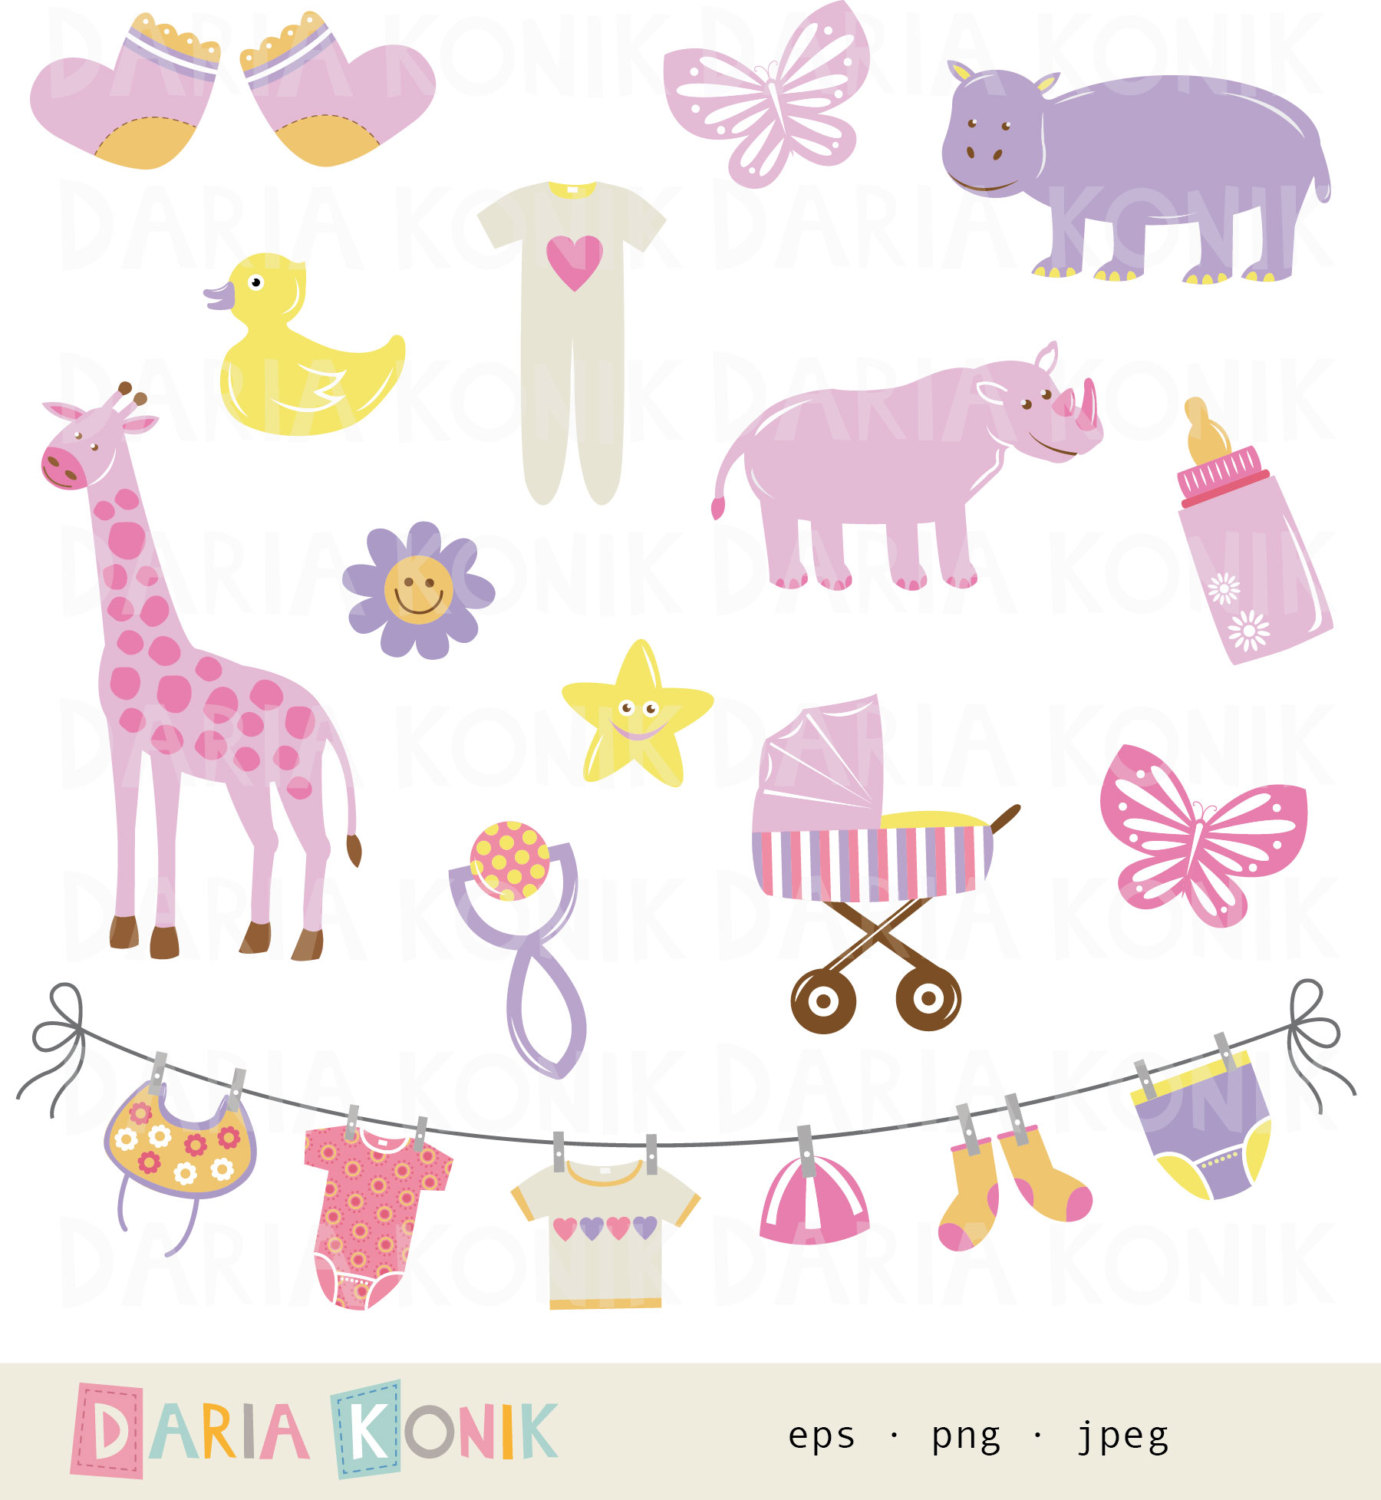 Baby girl supplies clipart banner transparent stock Baby girl items clipart - ClipartFox banner transparent stock